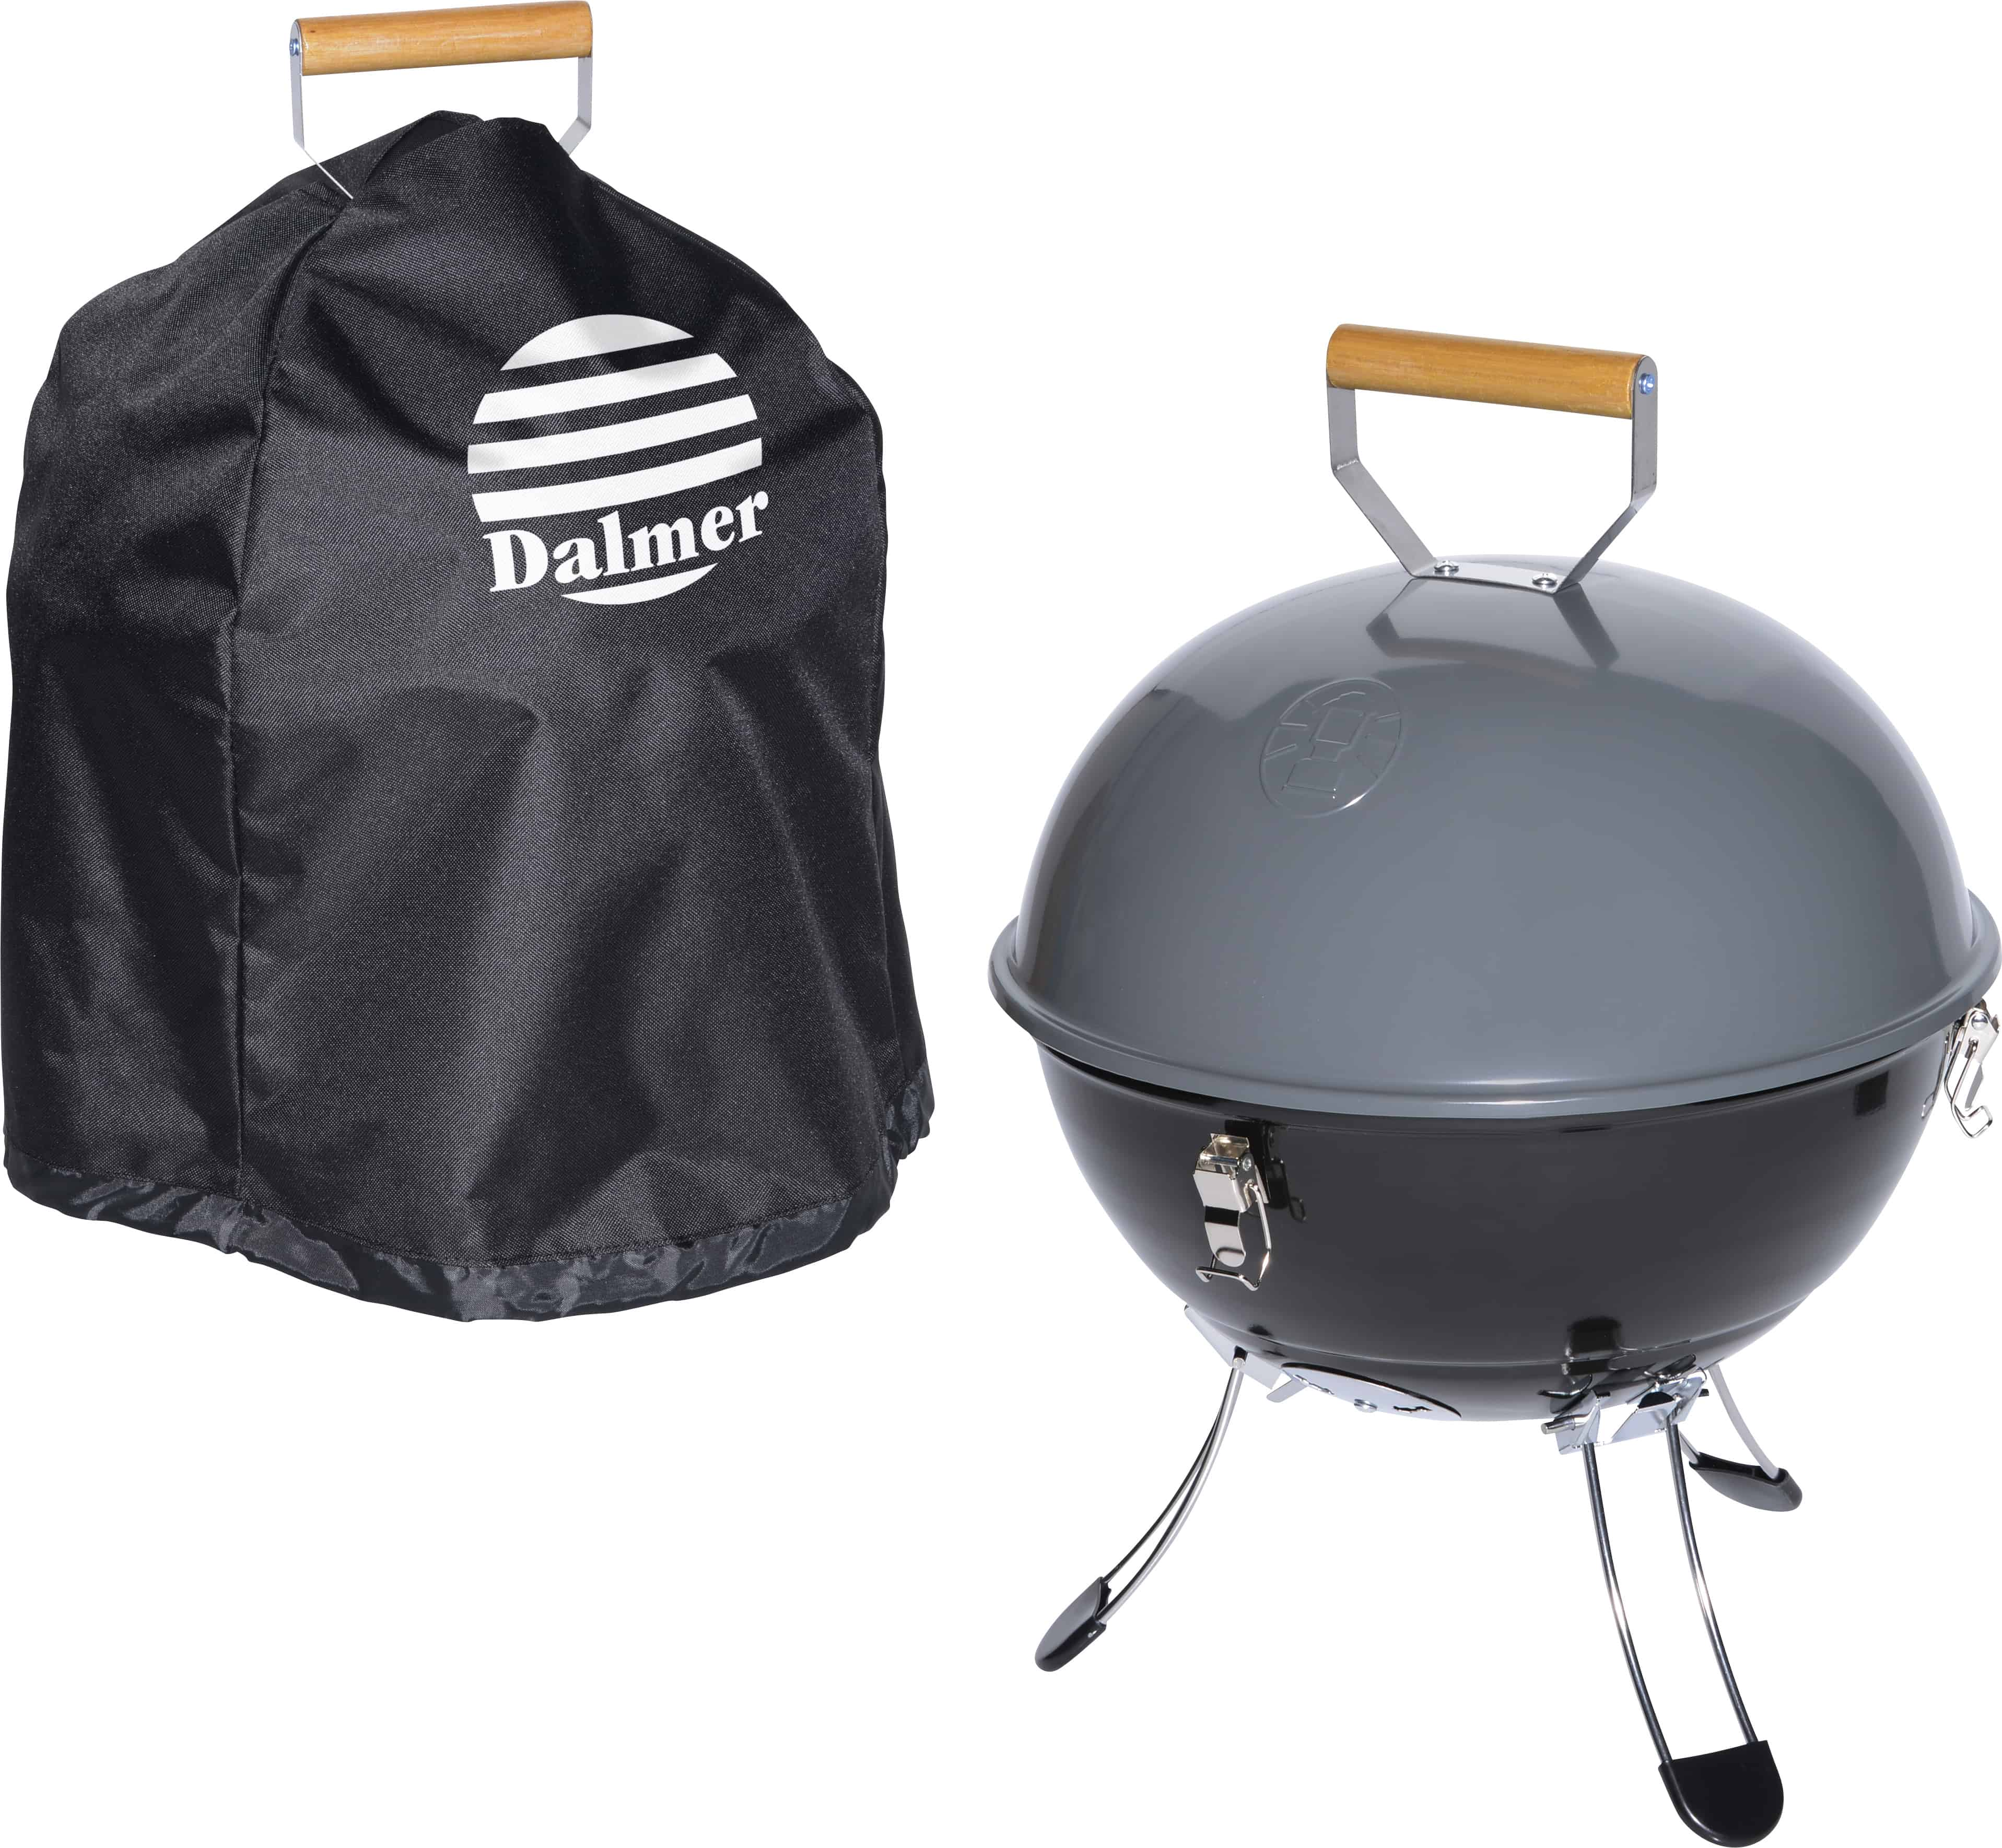 A Coleman Party Ball Charcoal Grill with Cover.